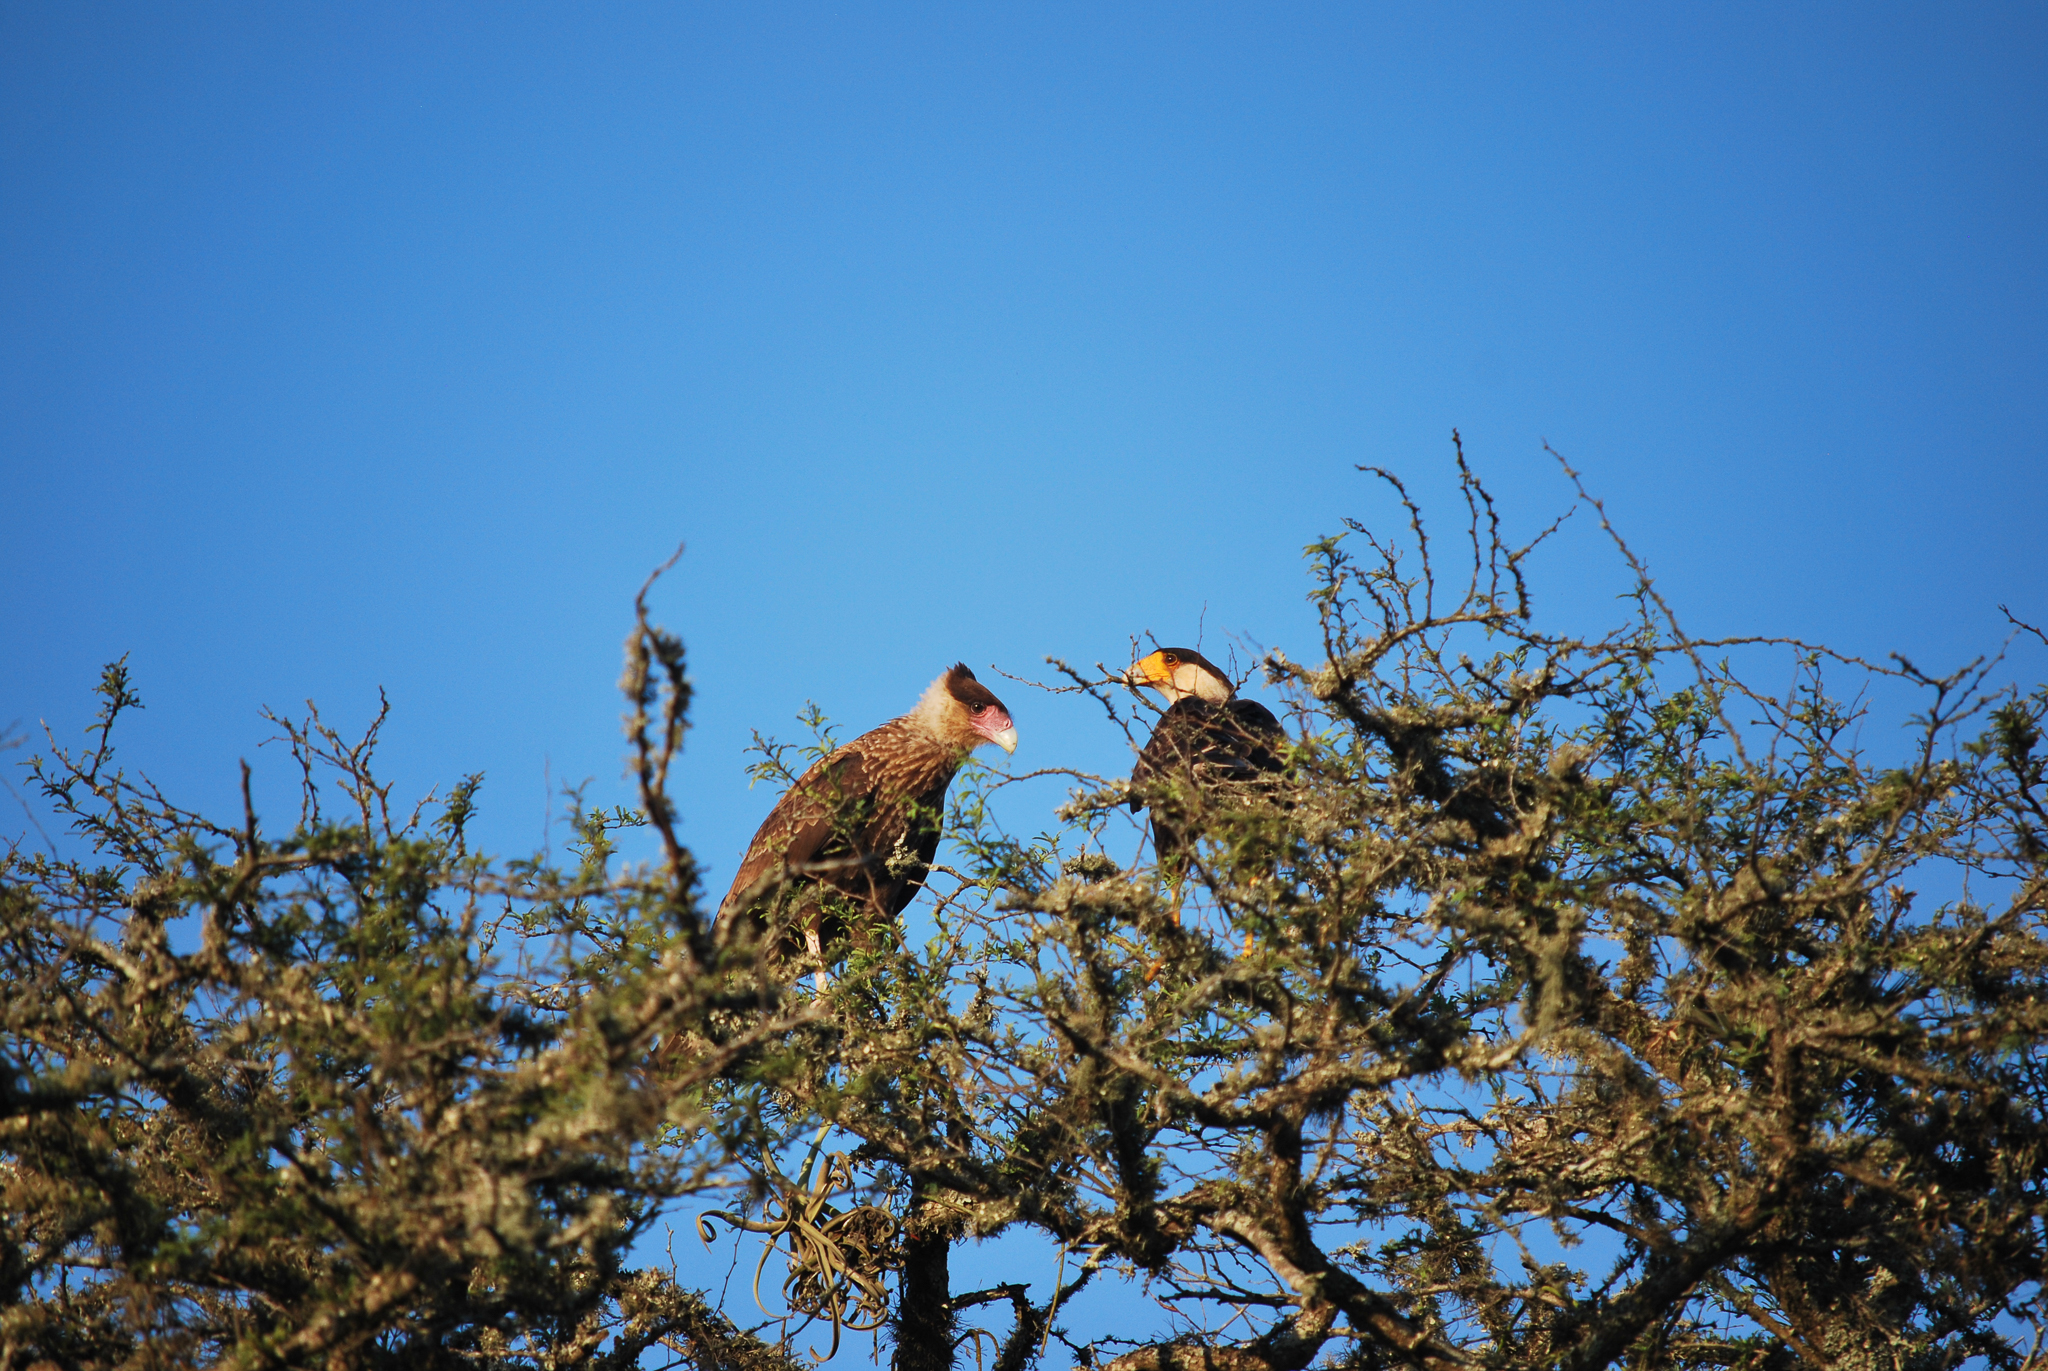 Two caracaras rest in a tree in Iberá.—Photo by Brooke Jarvis